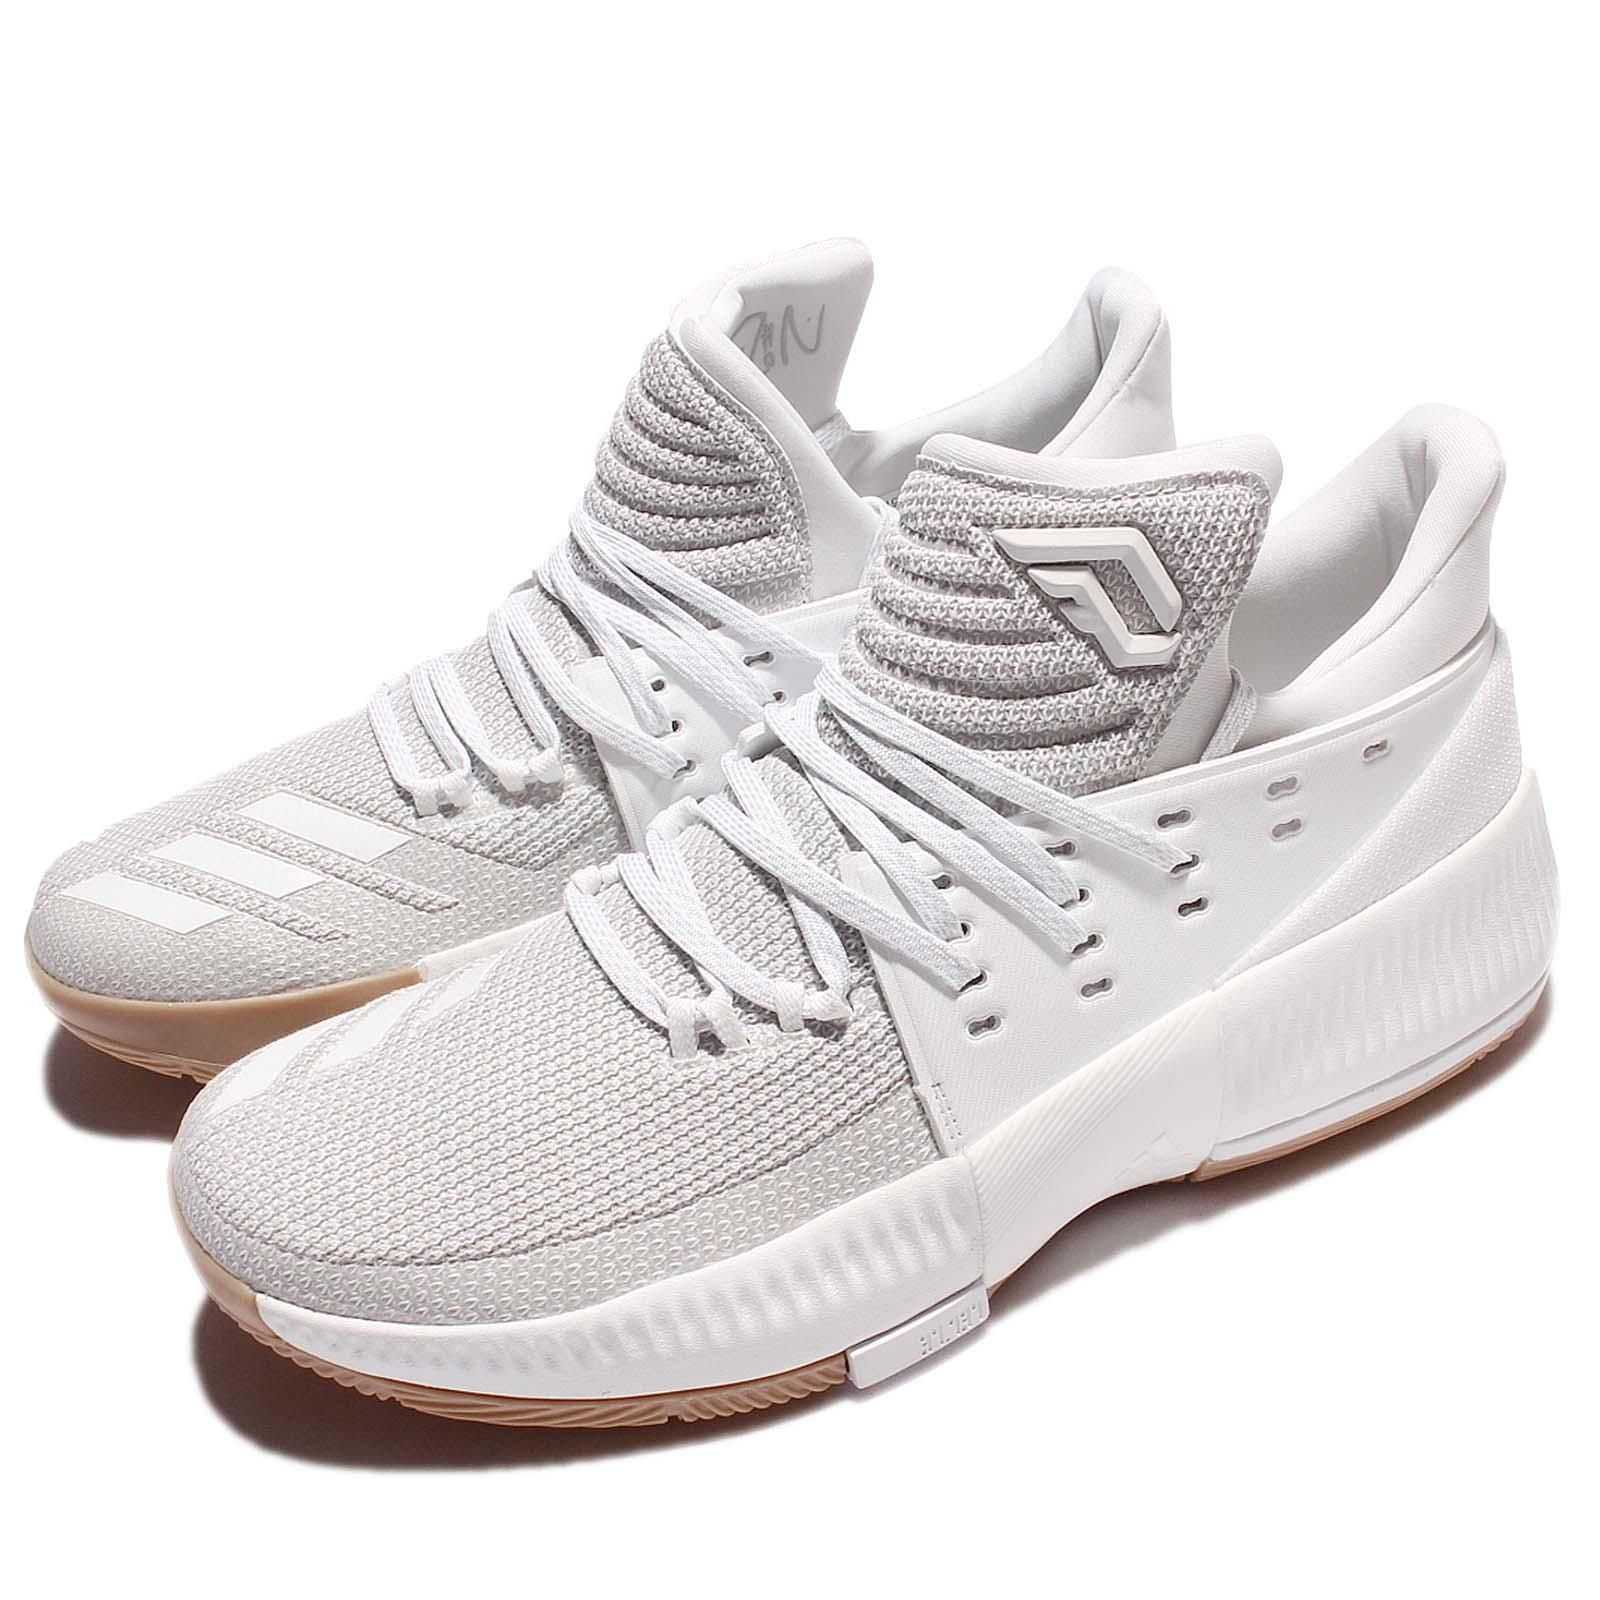 78ec779ffbc2 ... where to buy adidas d lillard 3 damian lillard legacy white gum men  basketball shoes bw0323